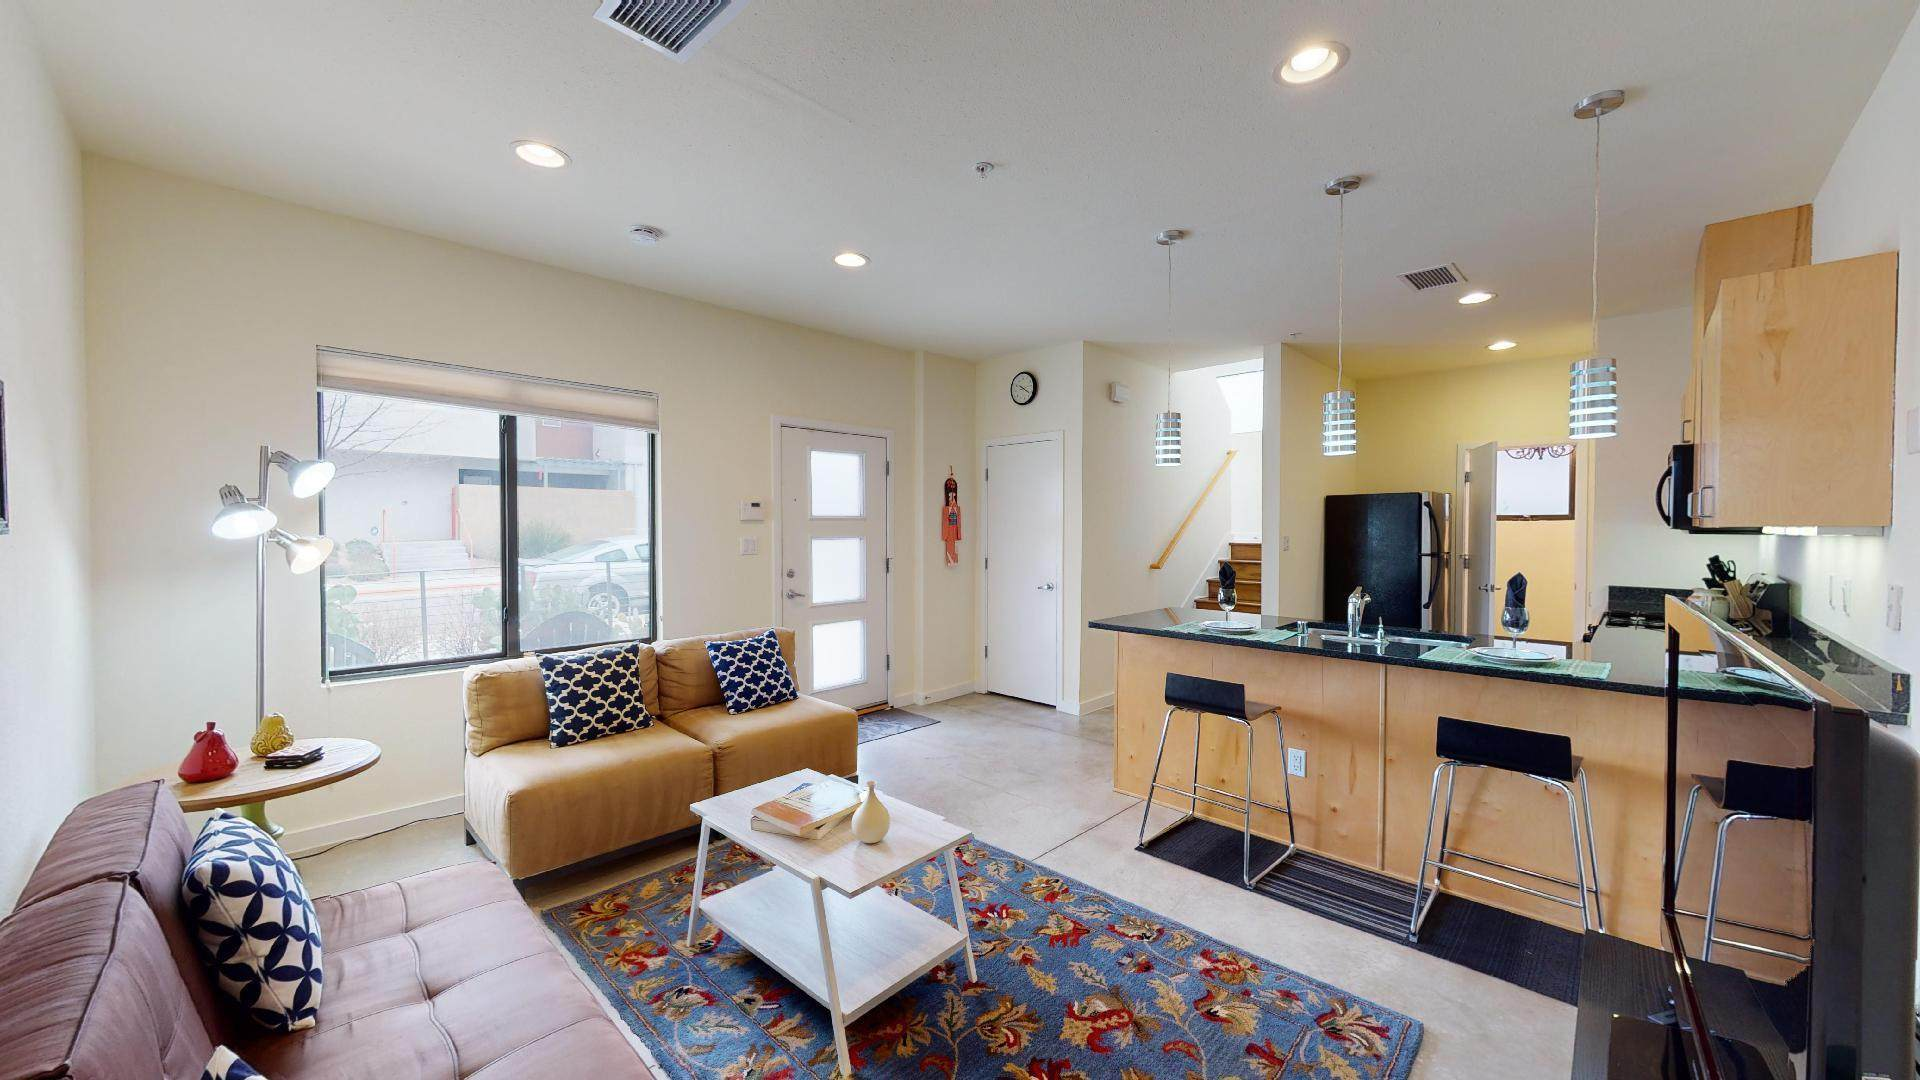 201 Aliso Drive SE #4, Albuquerque, NM 87108 (MLS #971419) :: Campbell & Campbell Real Estate Services